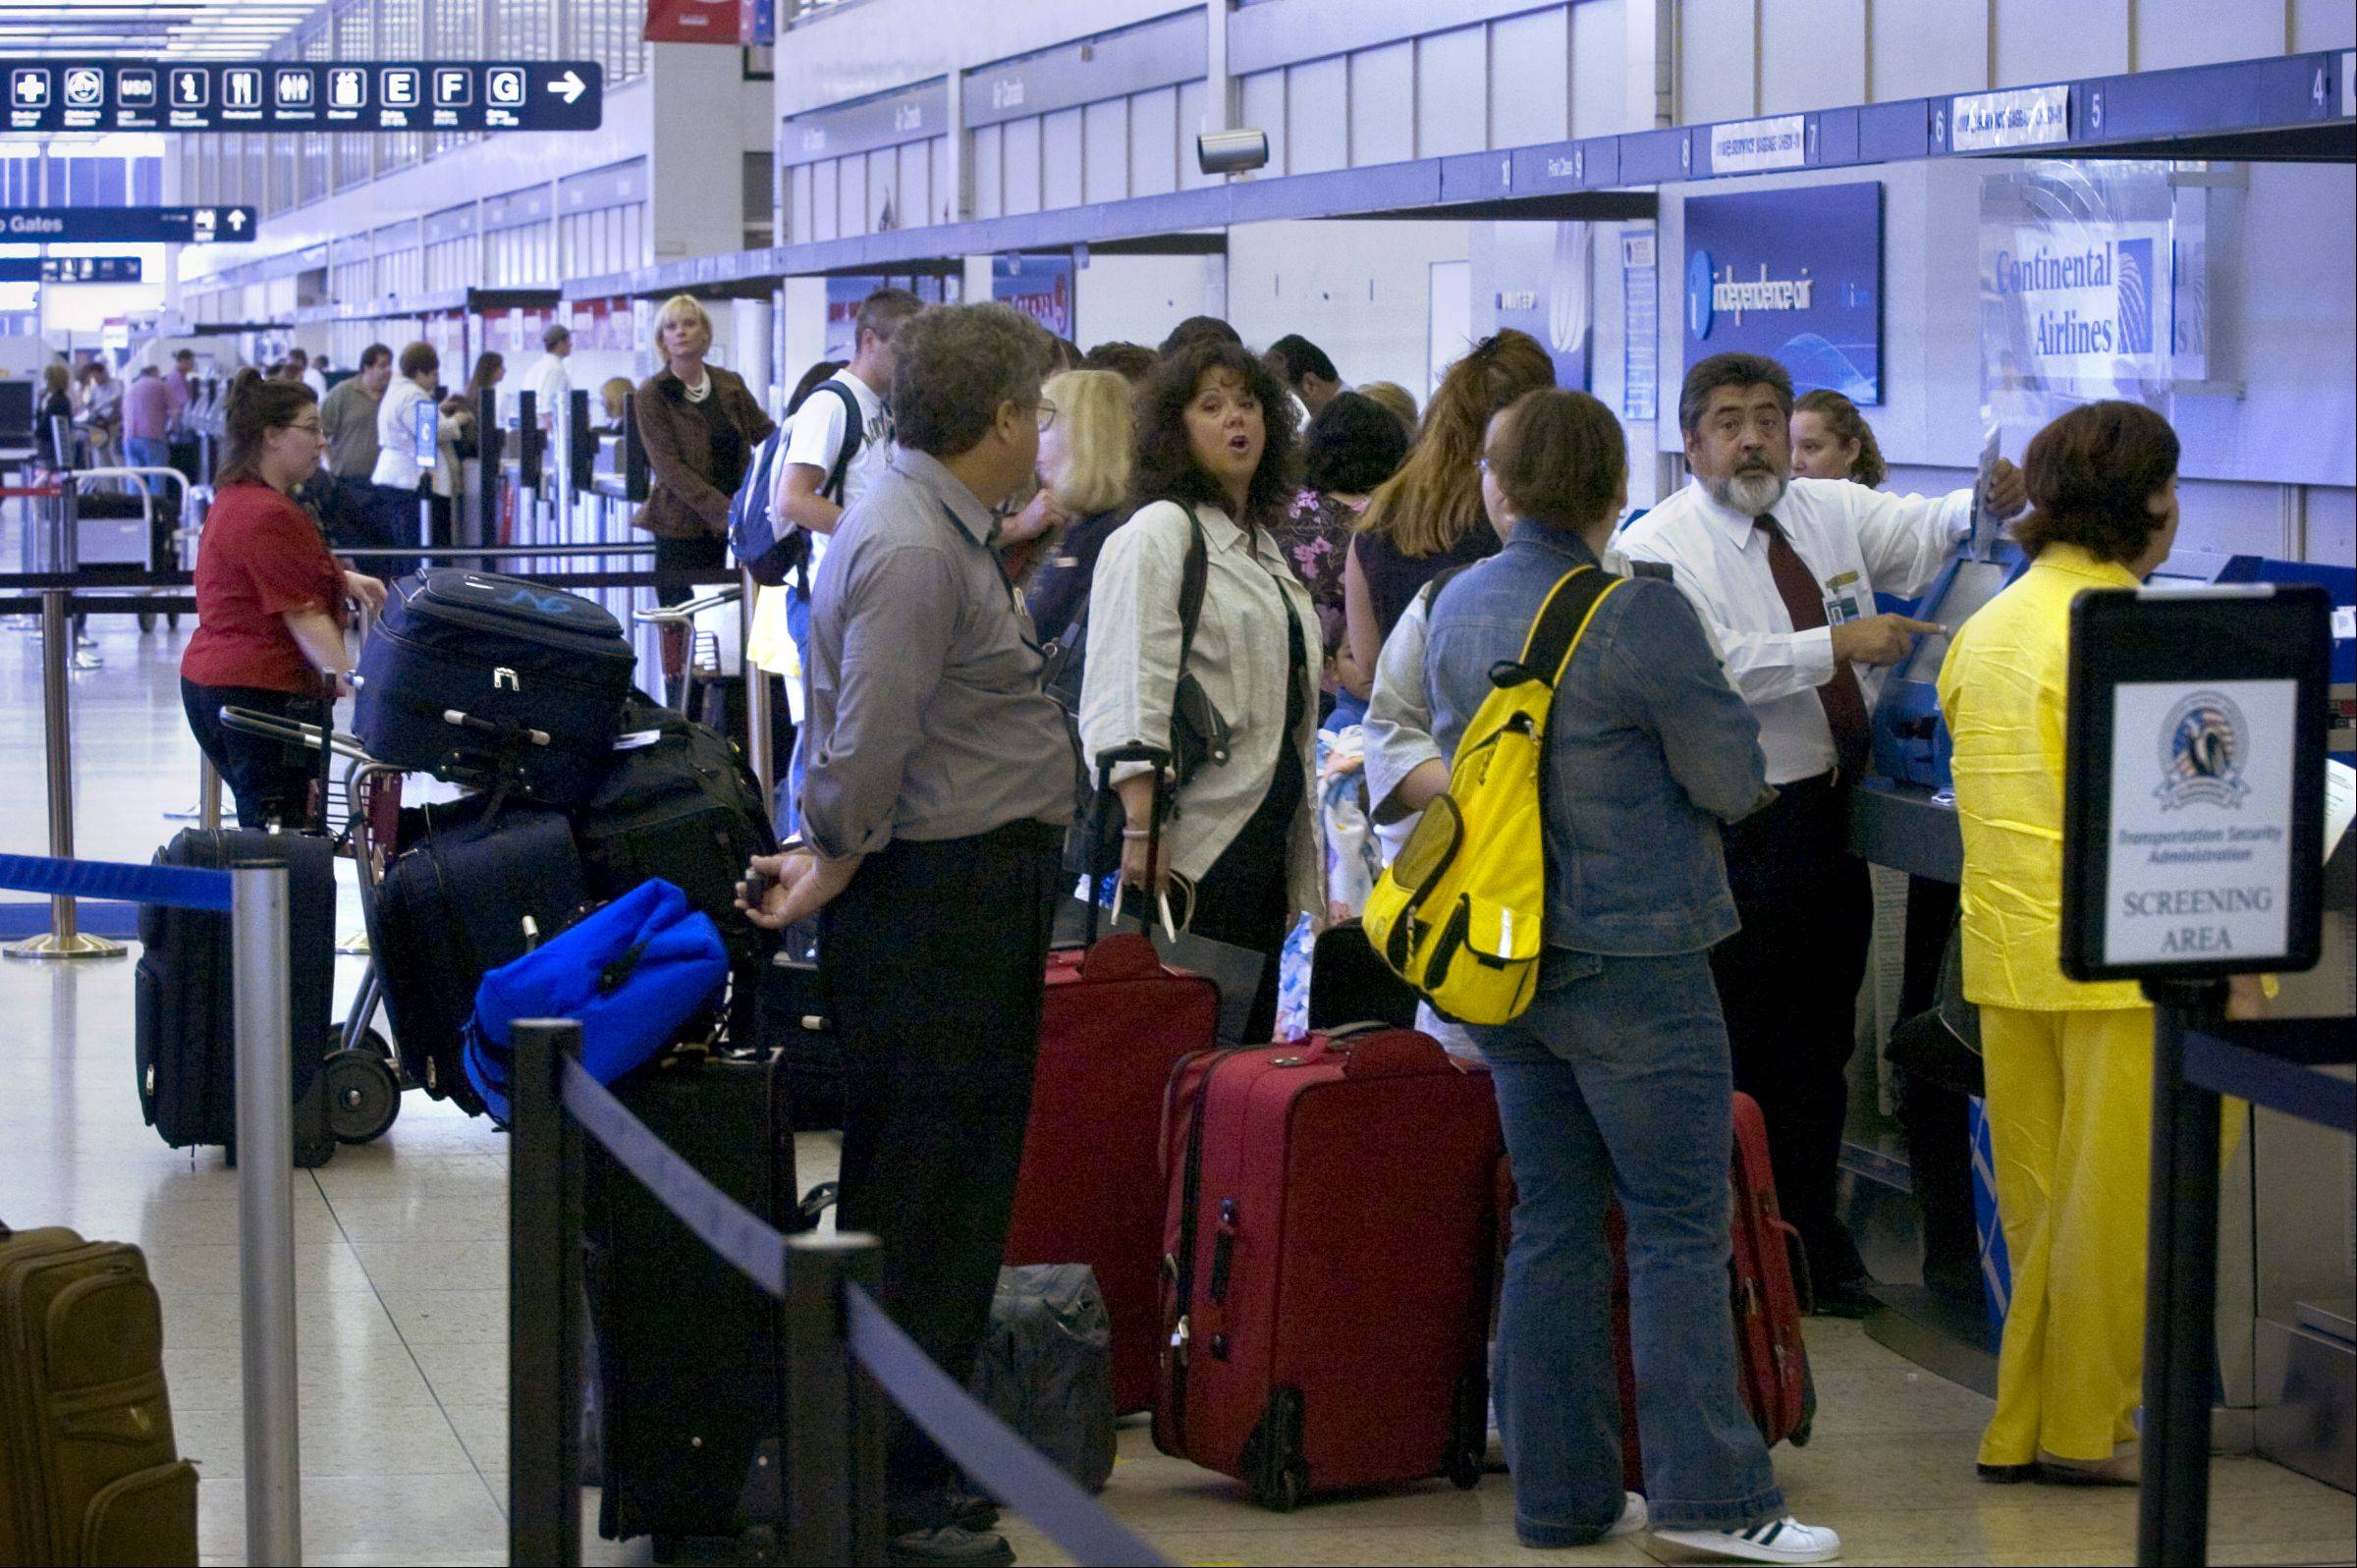 Things are going to get really busy at Chicago's O'Hare International Airport this weekend. The city's Department of Aviation says that the 269,000 passengers expected at O'Hare on Friday will make it the busiest day of the Memorial Day weekend.